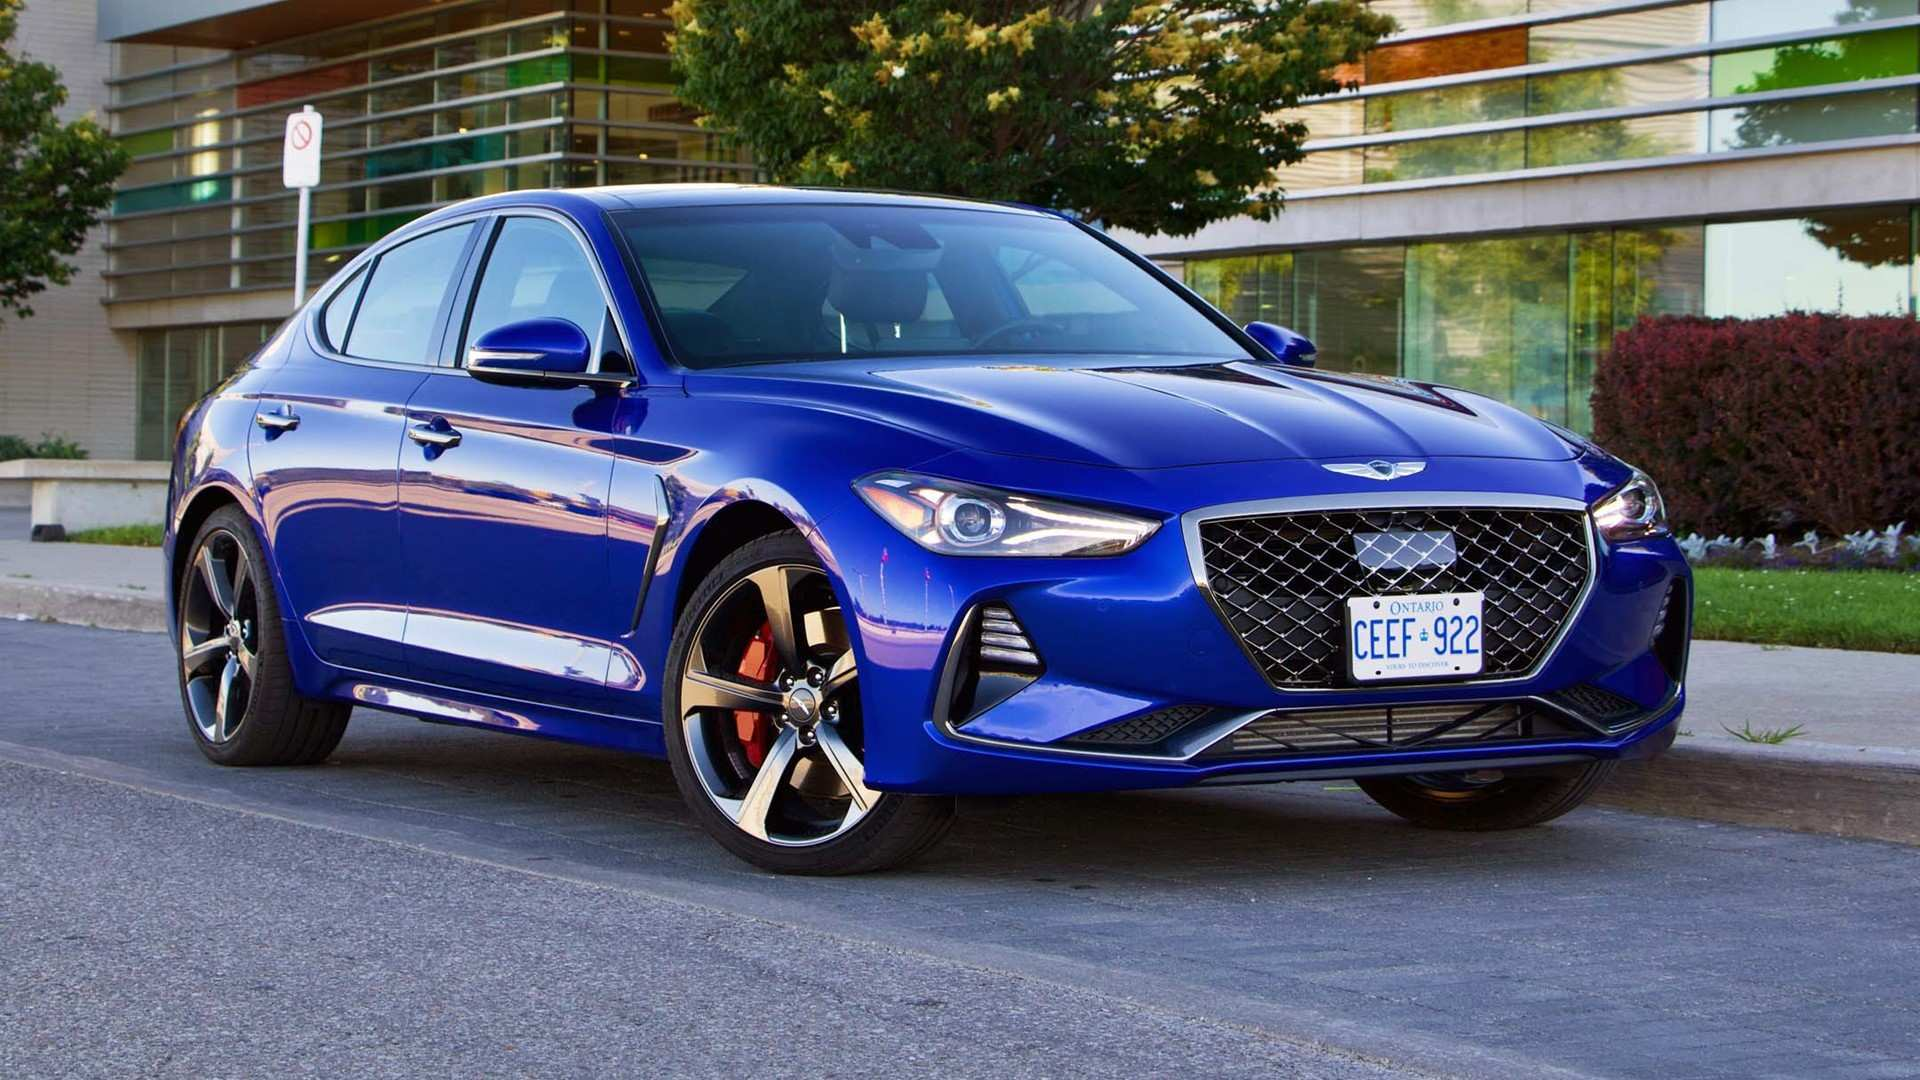 90 Best Review 2019 Genesis G70 Review First Drive with 2019 Genesis G70 Review